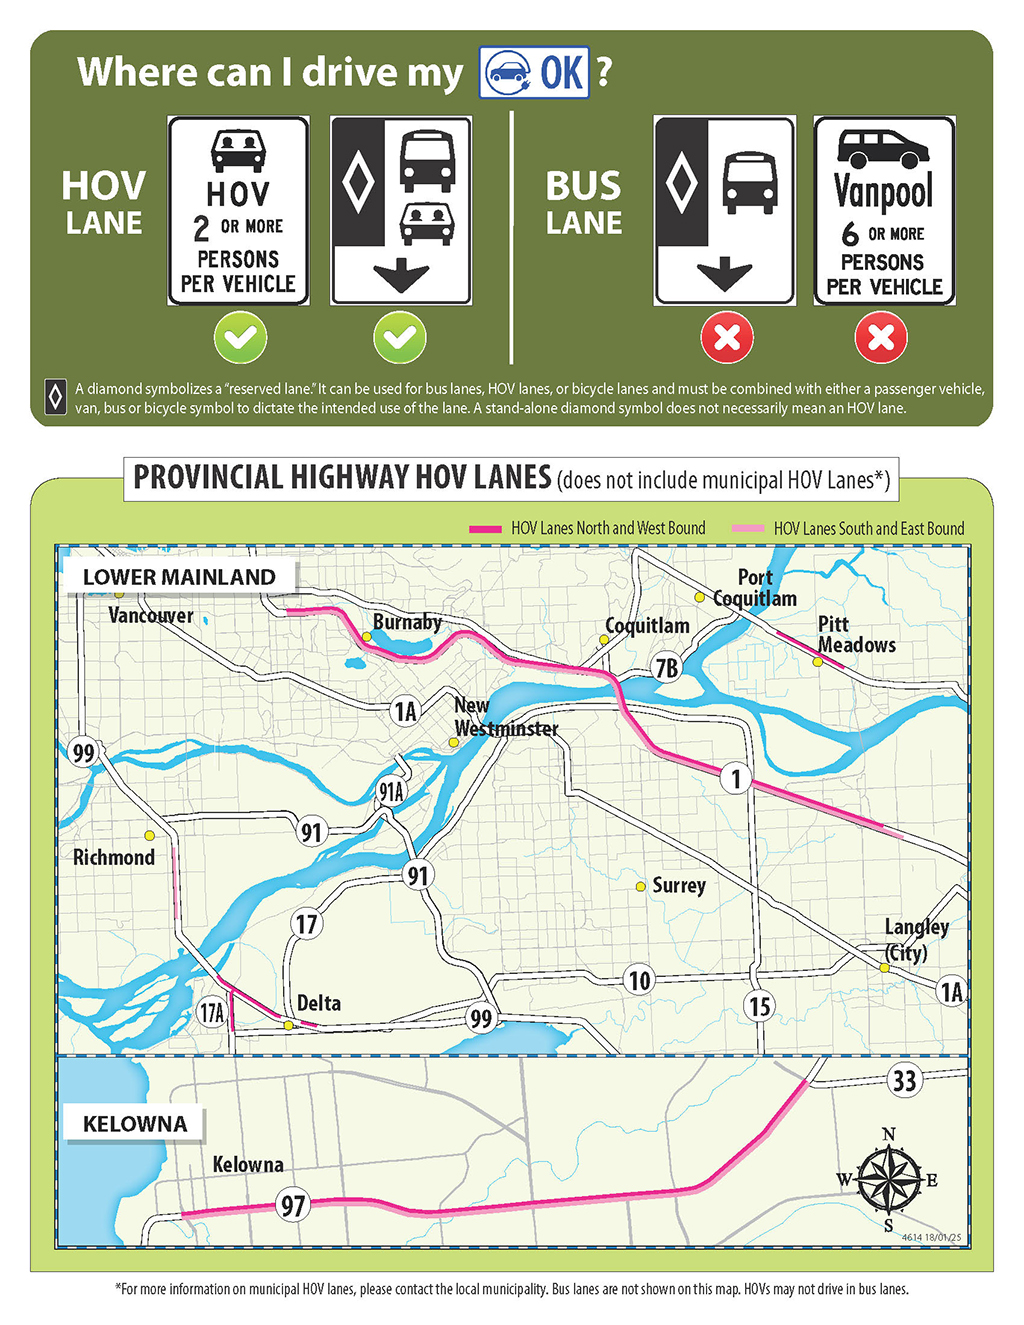 Map of provincial highway HOV lanes eligible for use by electric vehicles